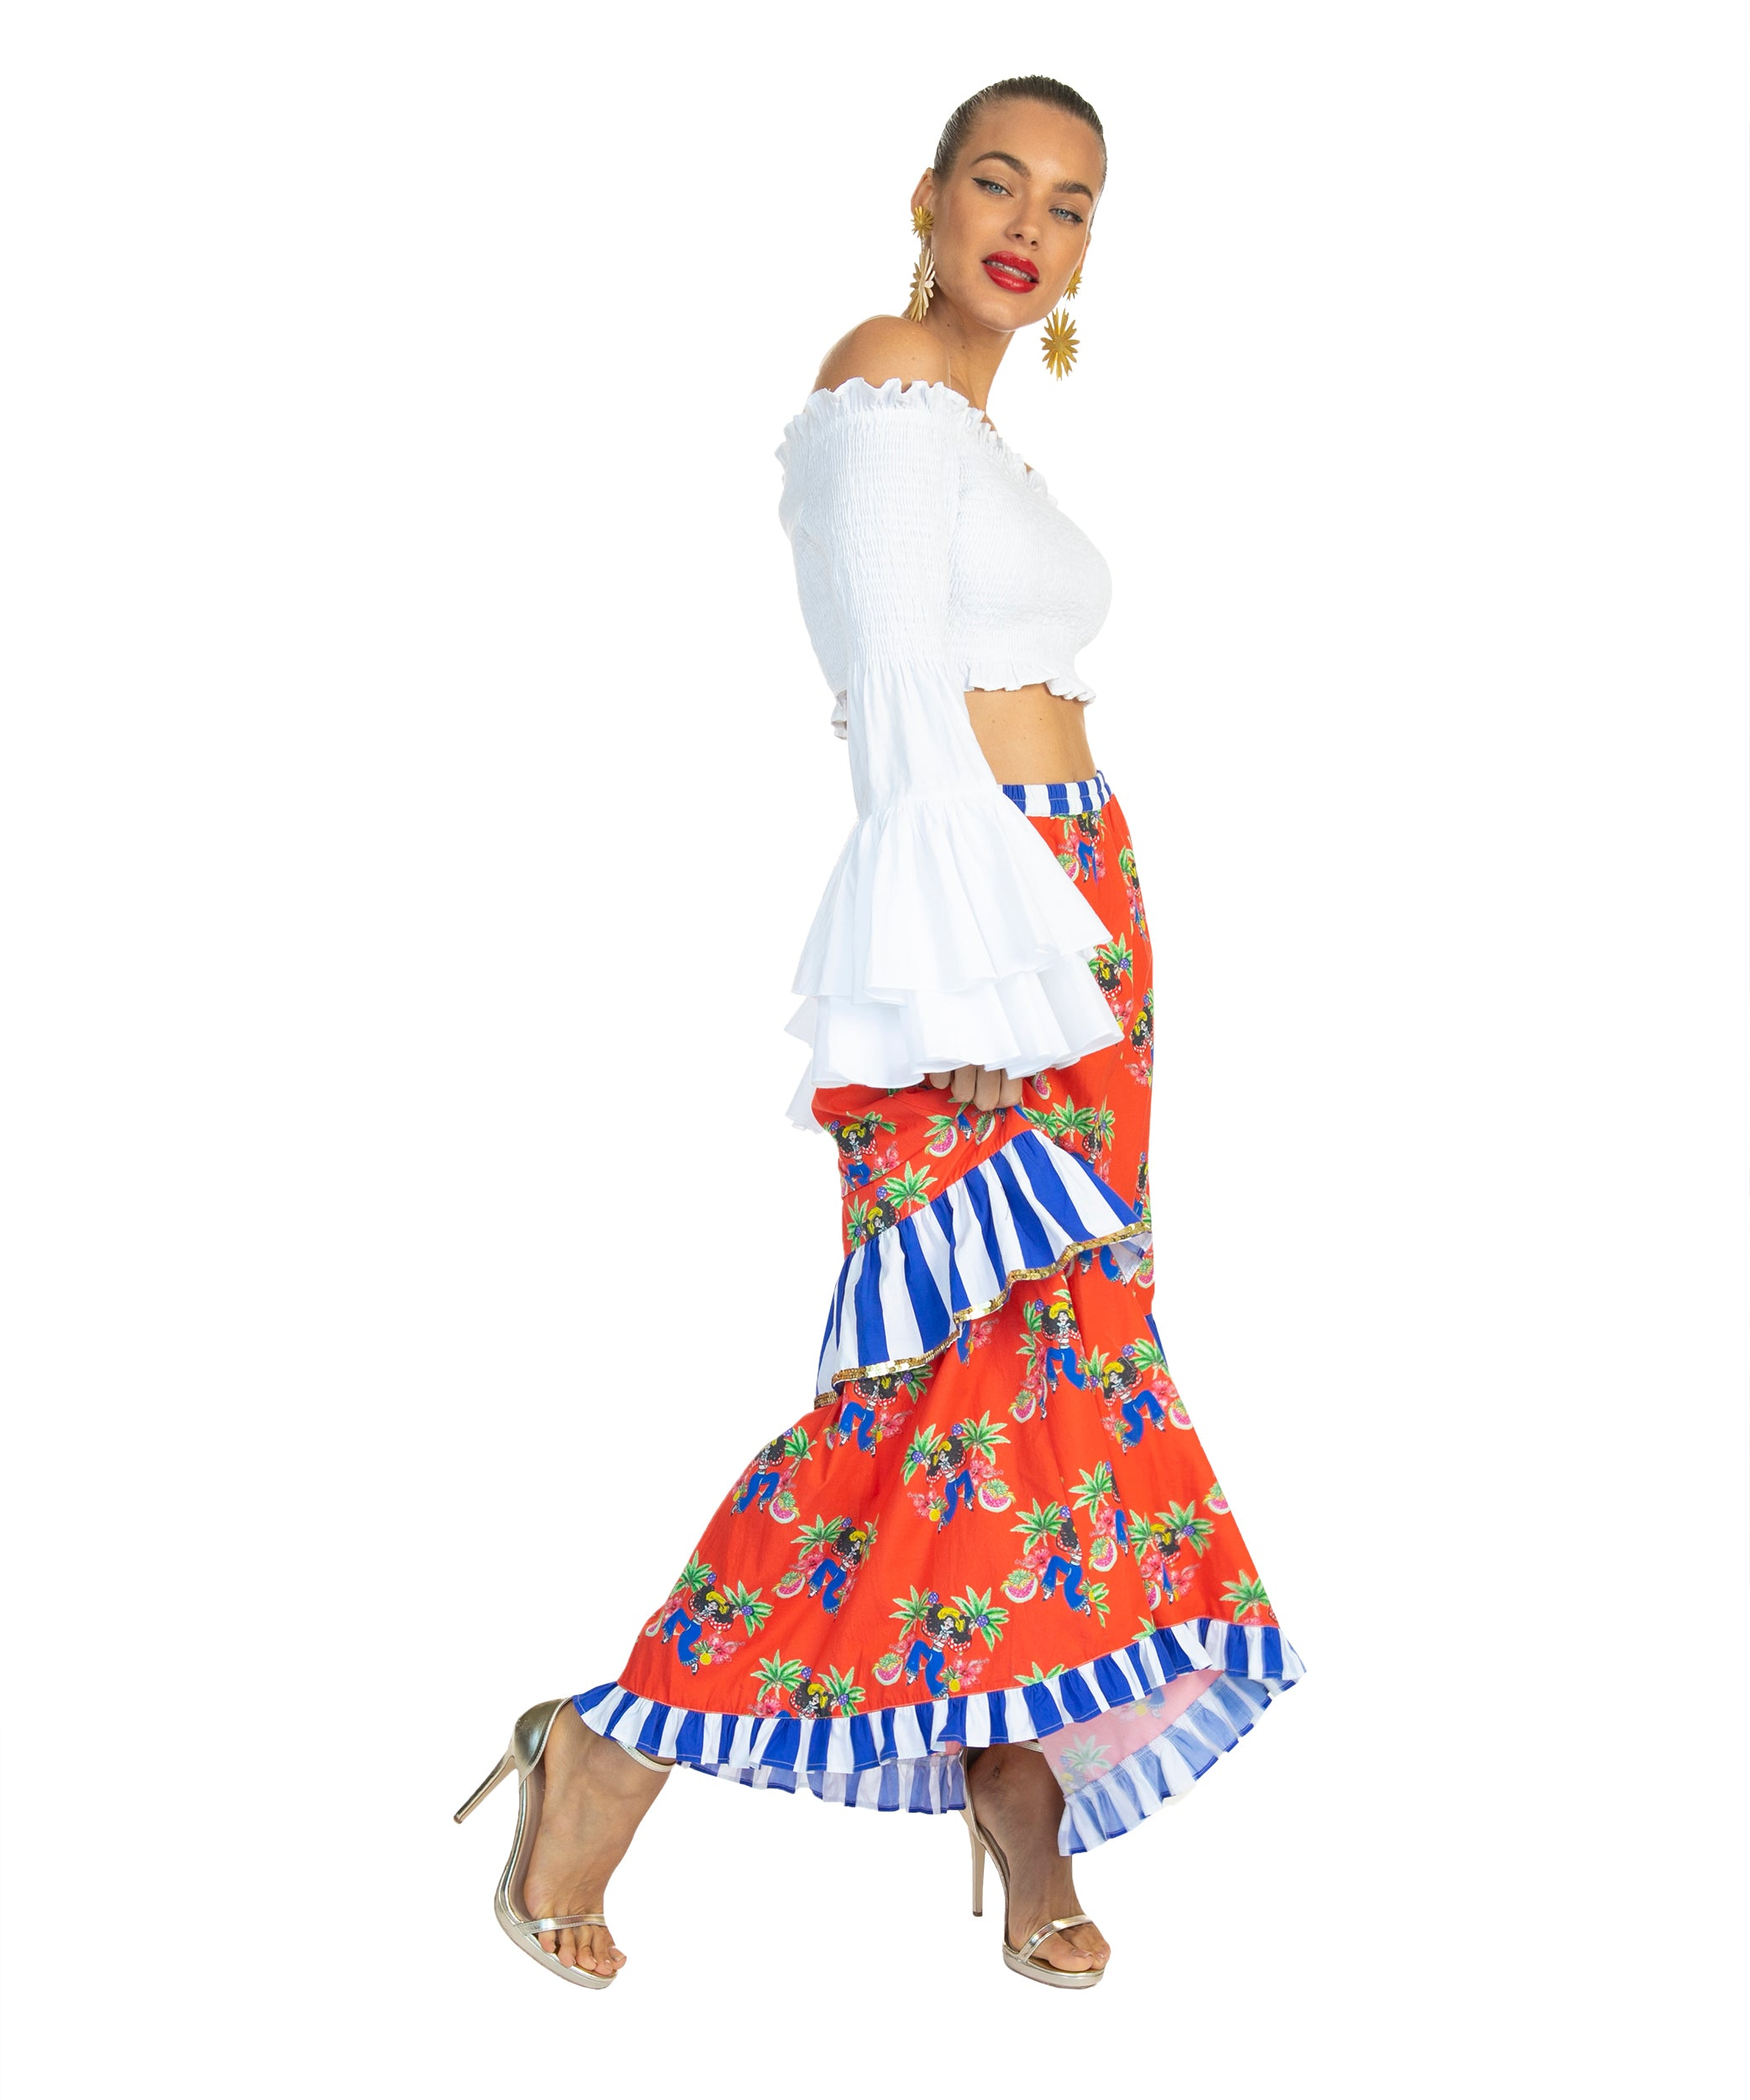 The Salsa Cubana Slimline Skirt by Bonita Collective